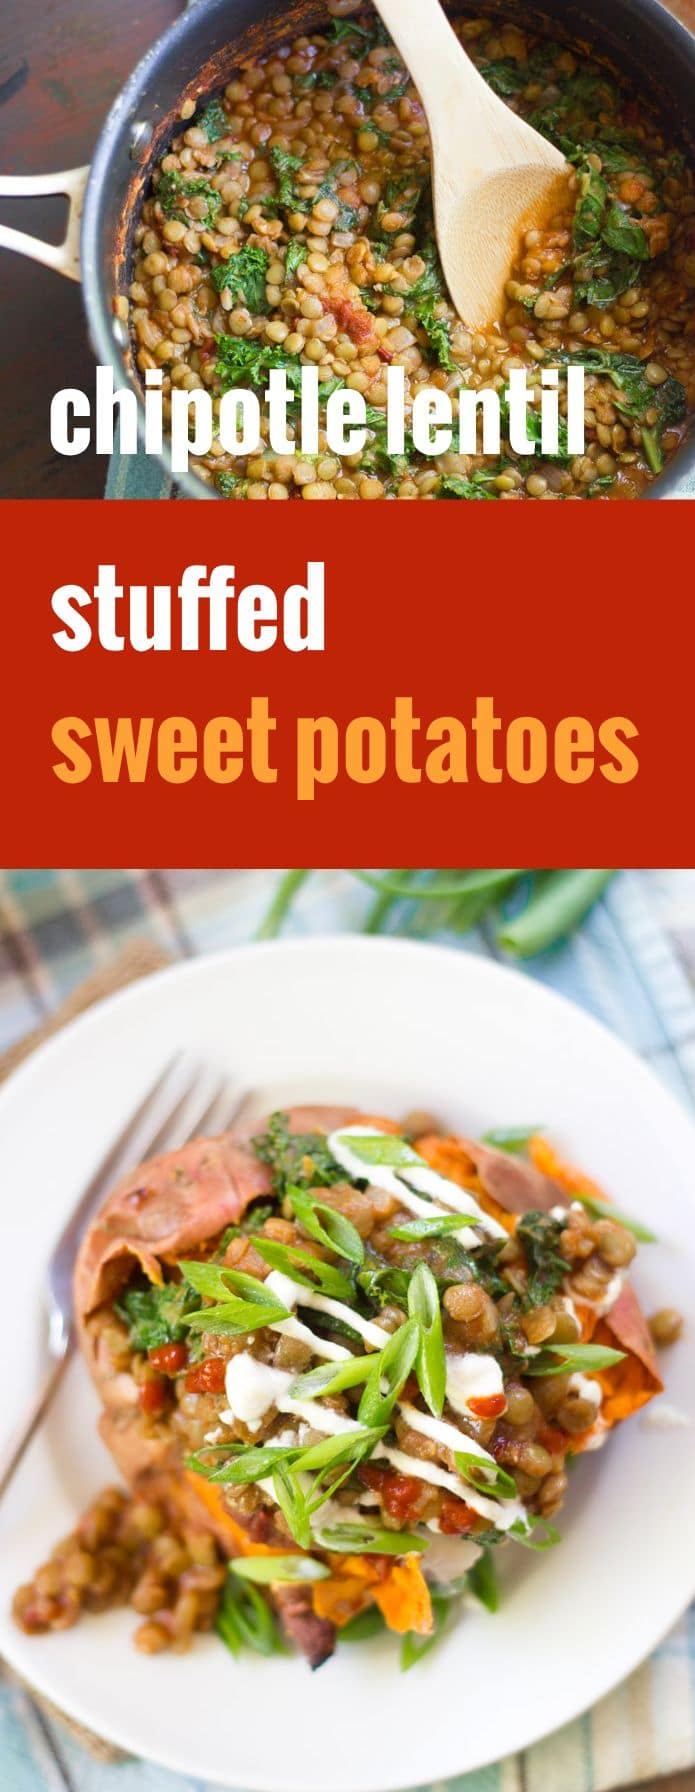 Chipotle Lentil Stuffed Sweet Potatoes